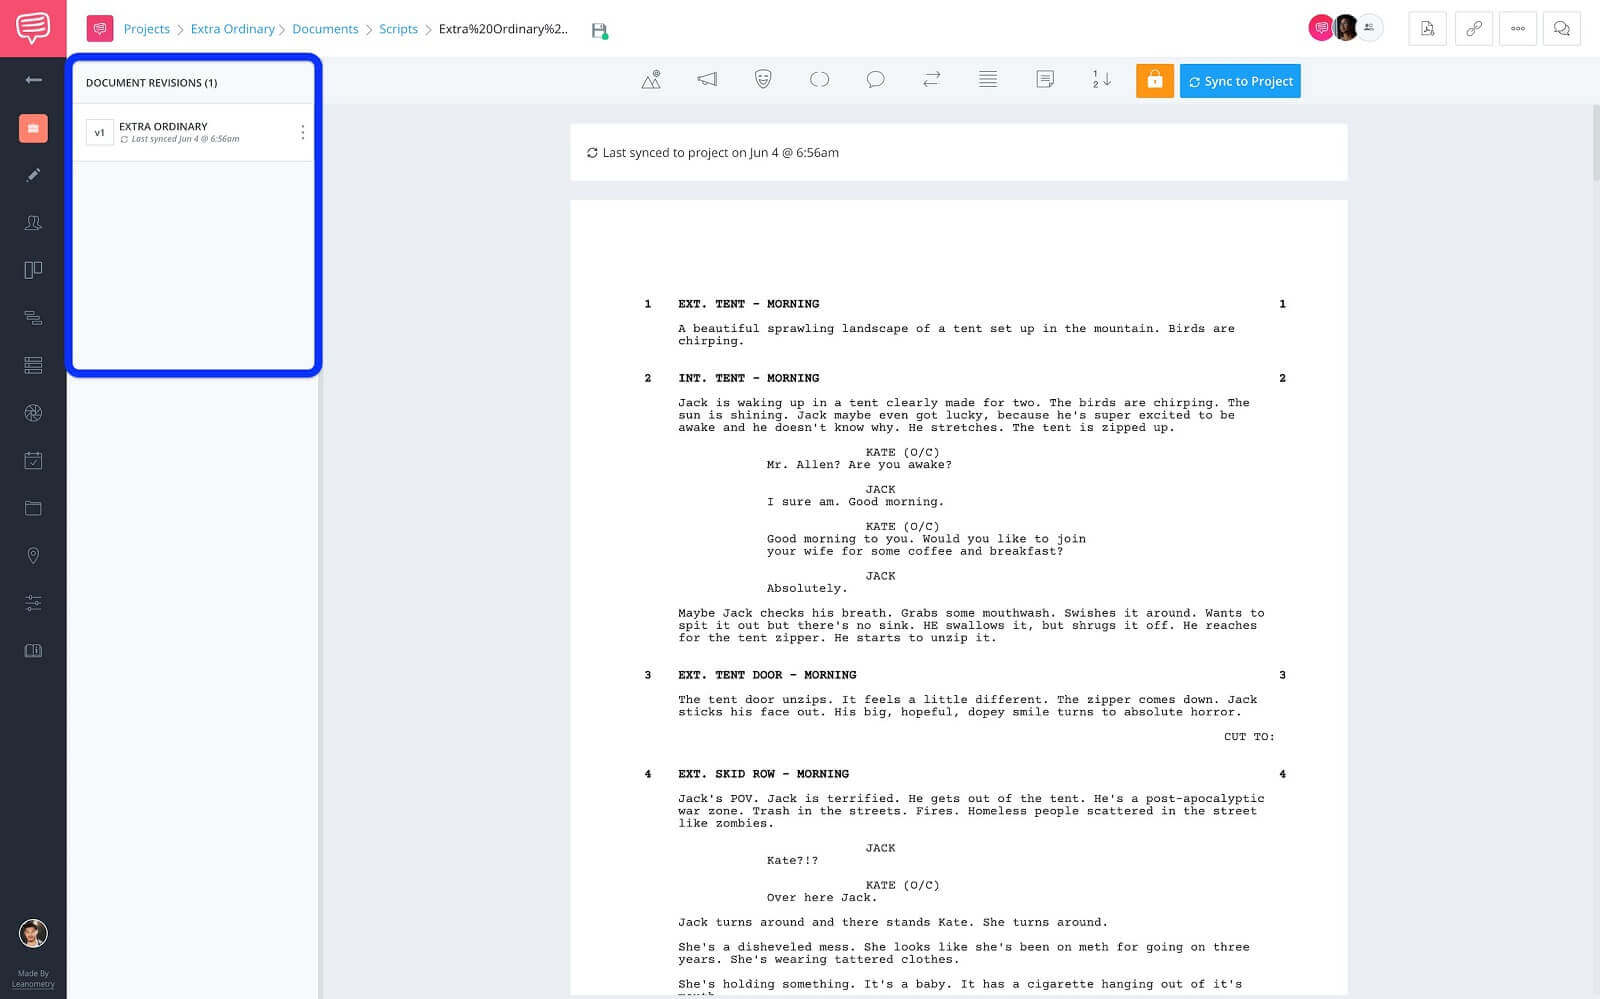 Screenwriting Page - Document Revision Sidebar